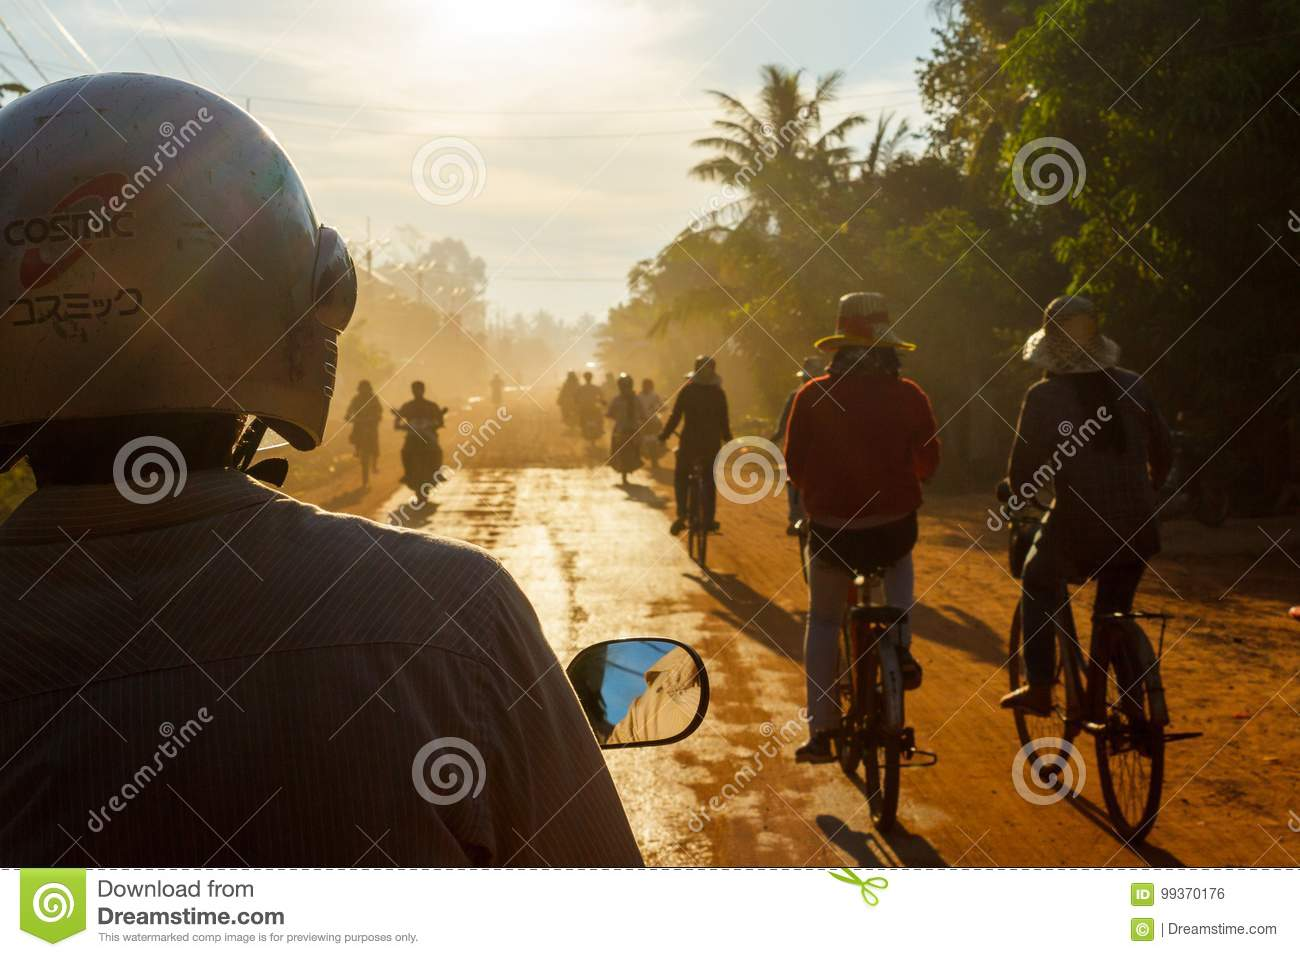 Bicycles and motorbikes on a dirt road in Cambodia